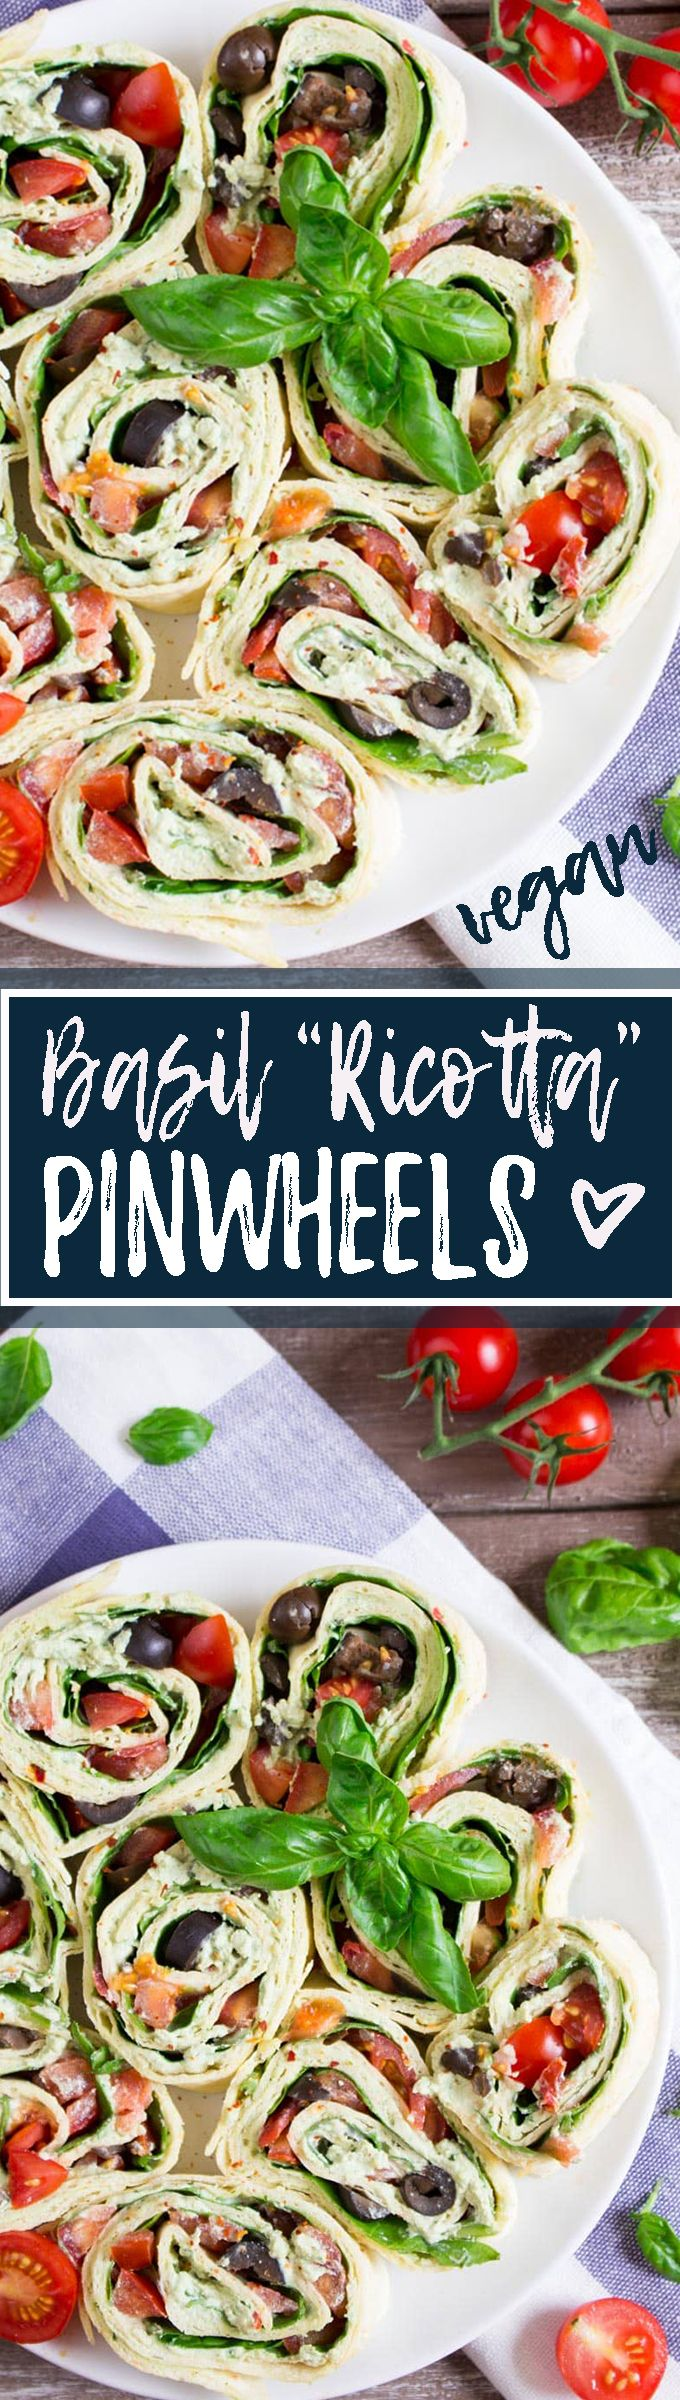 "These vegan pinwheels with basil ""ricotta"" are perfect for a quick and healthy lunch. They're also a real crowd pleaser at parties and family get-togethers! <3 